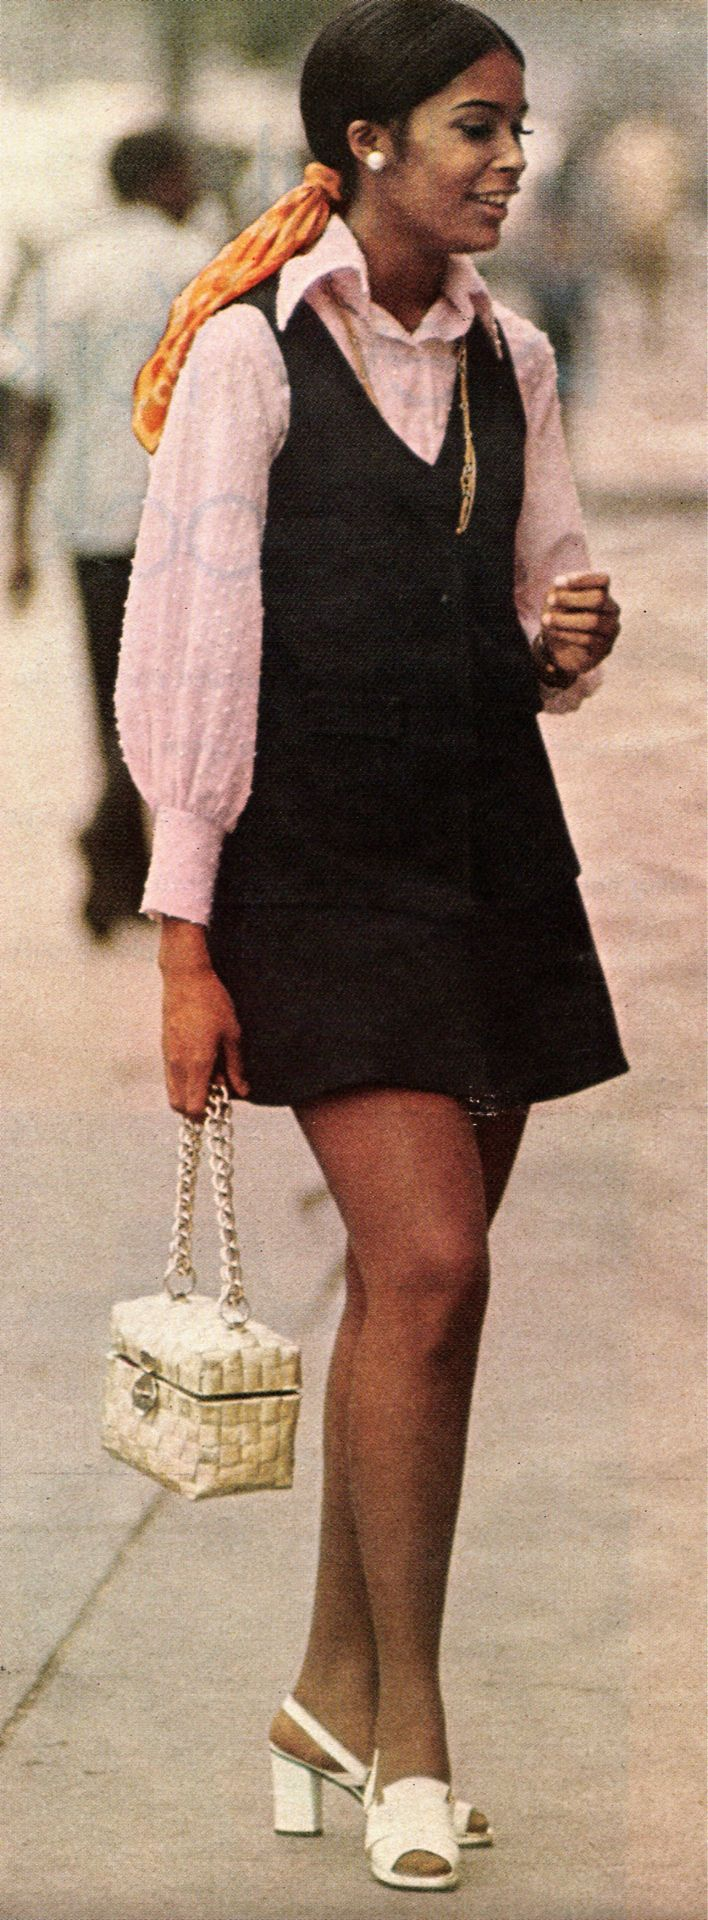 1970's Fashion. My 3rd grade teacher looked and dressed just like this!